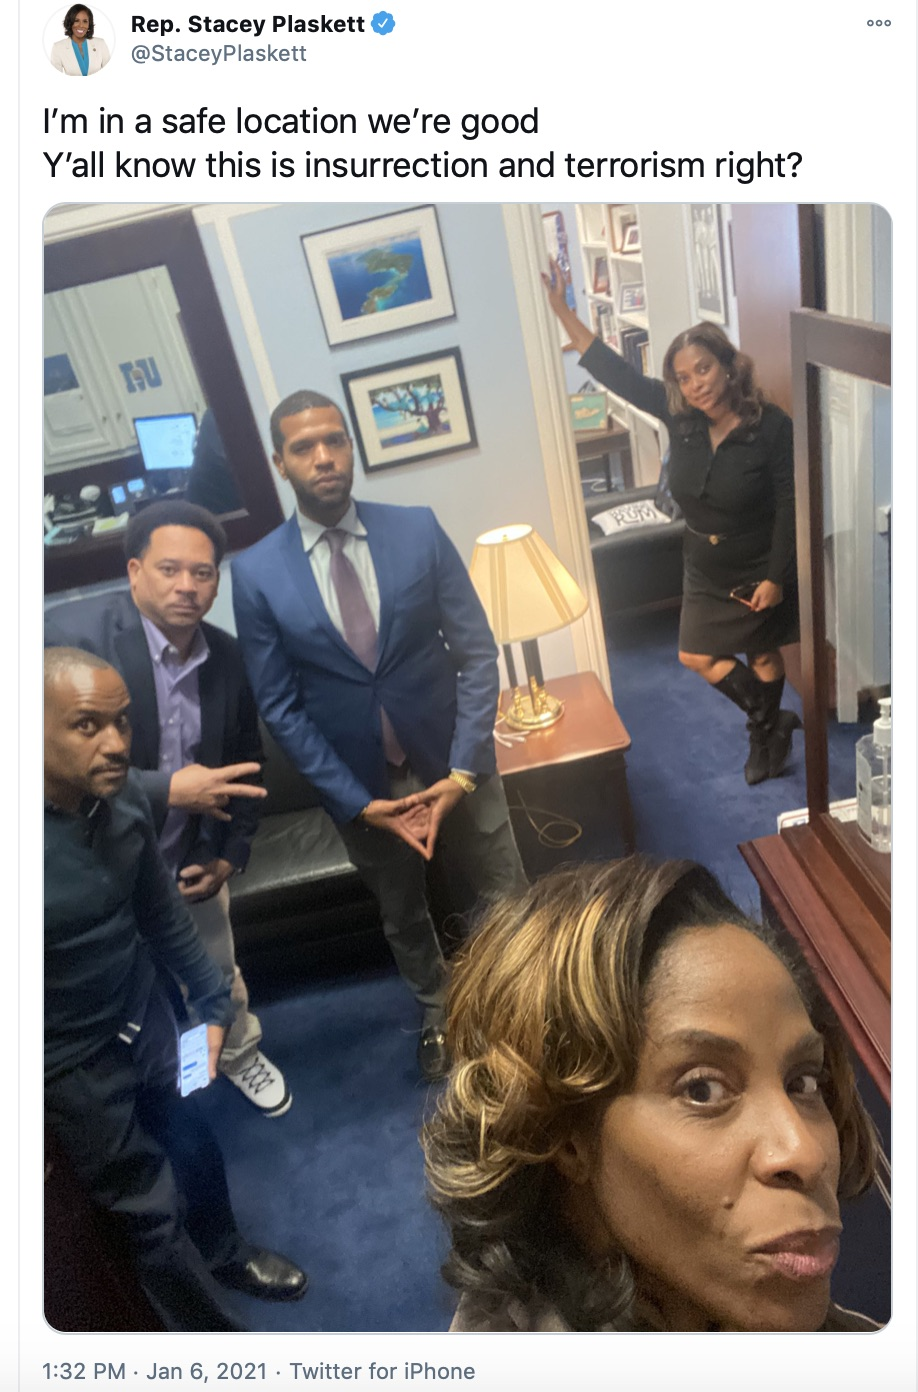 Rep Stacey Plaskett hiding from terrorists in her office